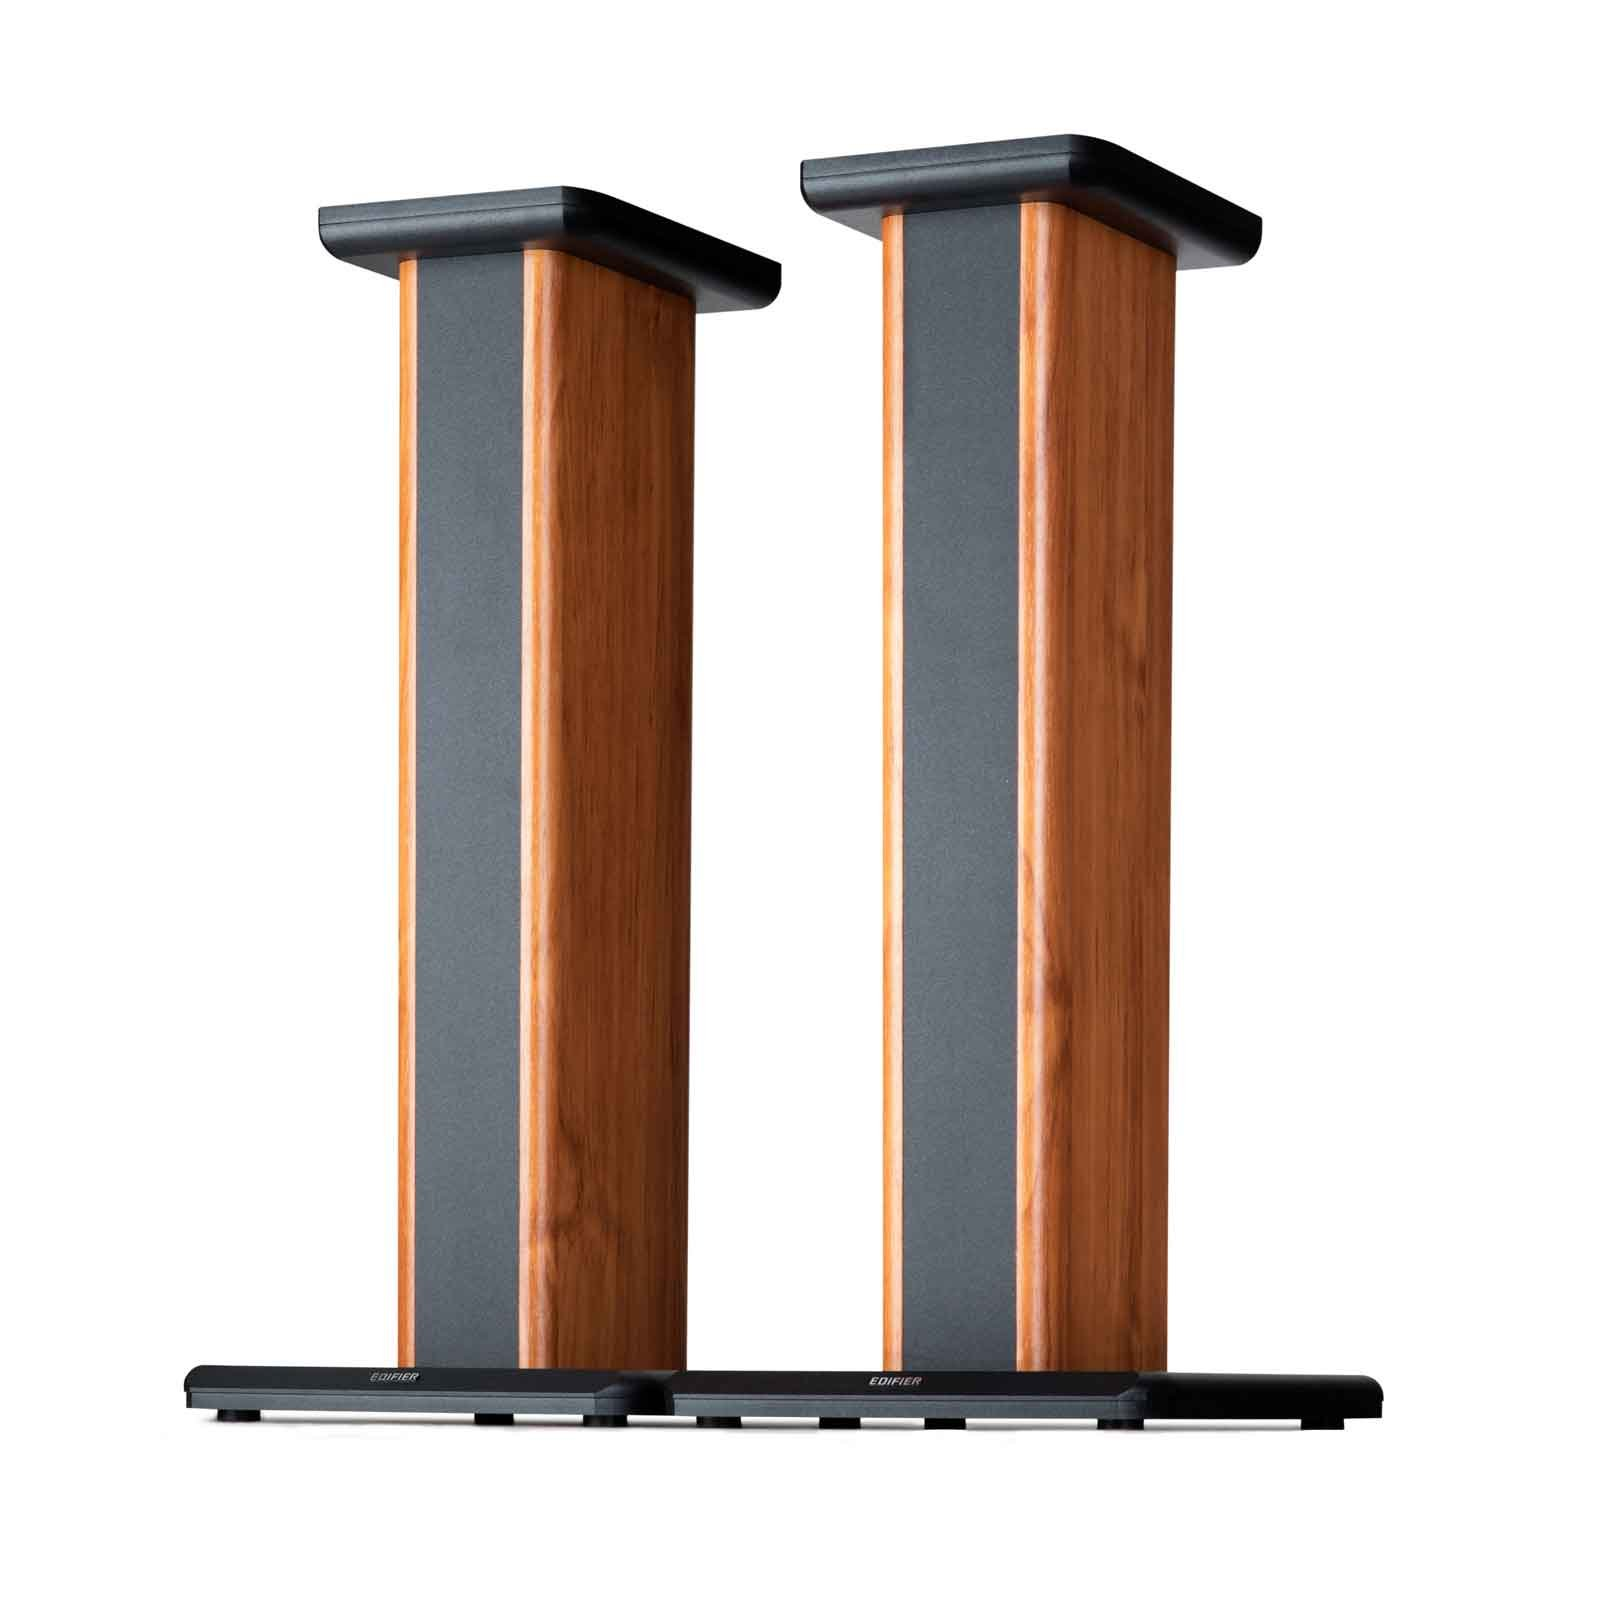 Edifier S2000PRO Wood Grain Speaker Stands Enhanced Audio Listening Experience For Home Theaters by Edifier